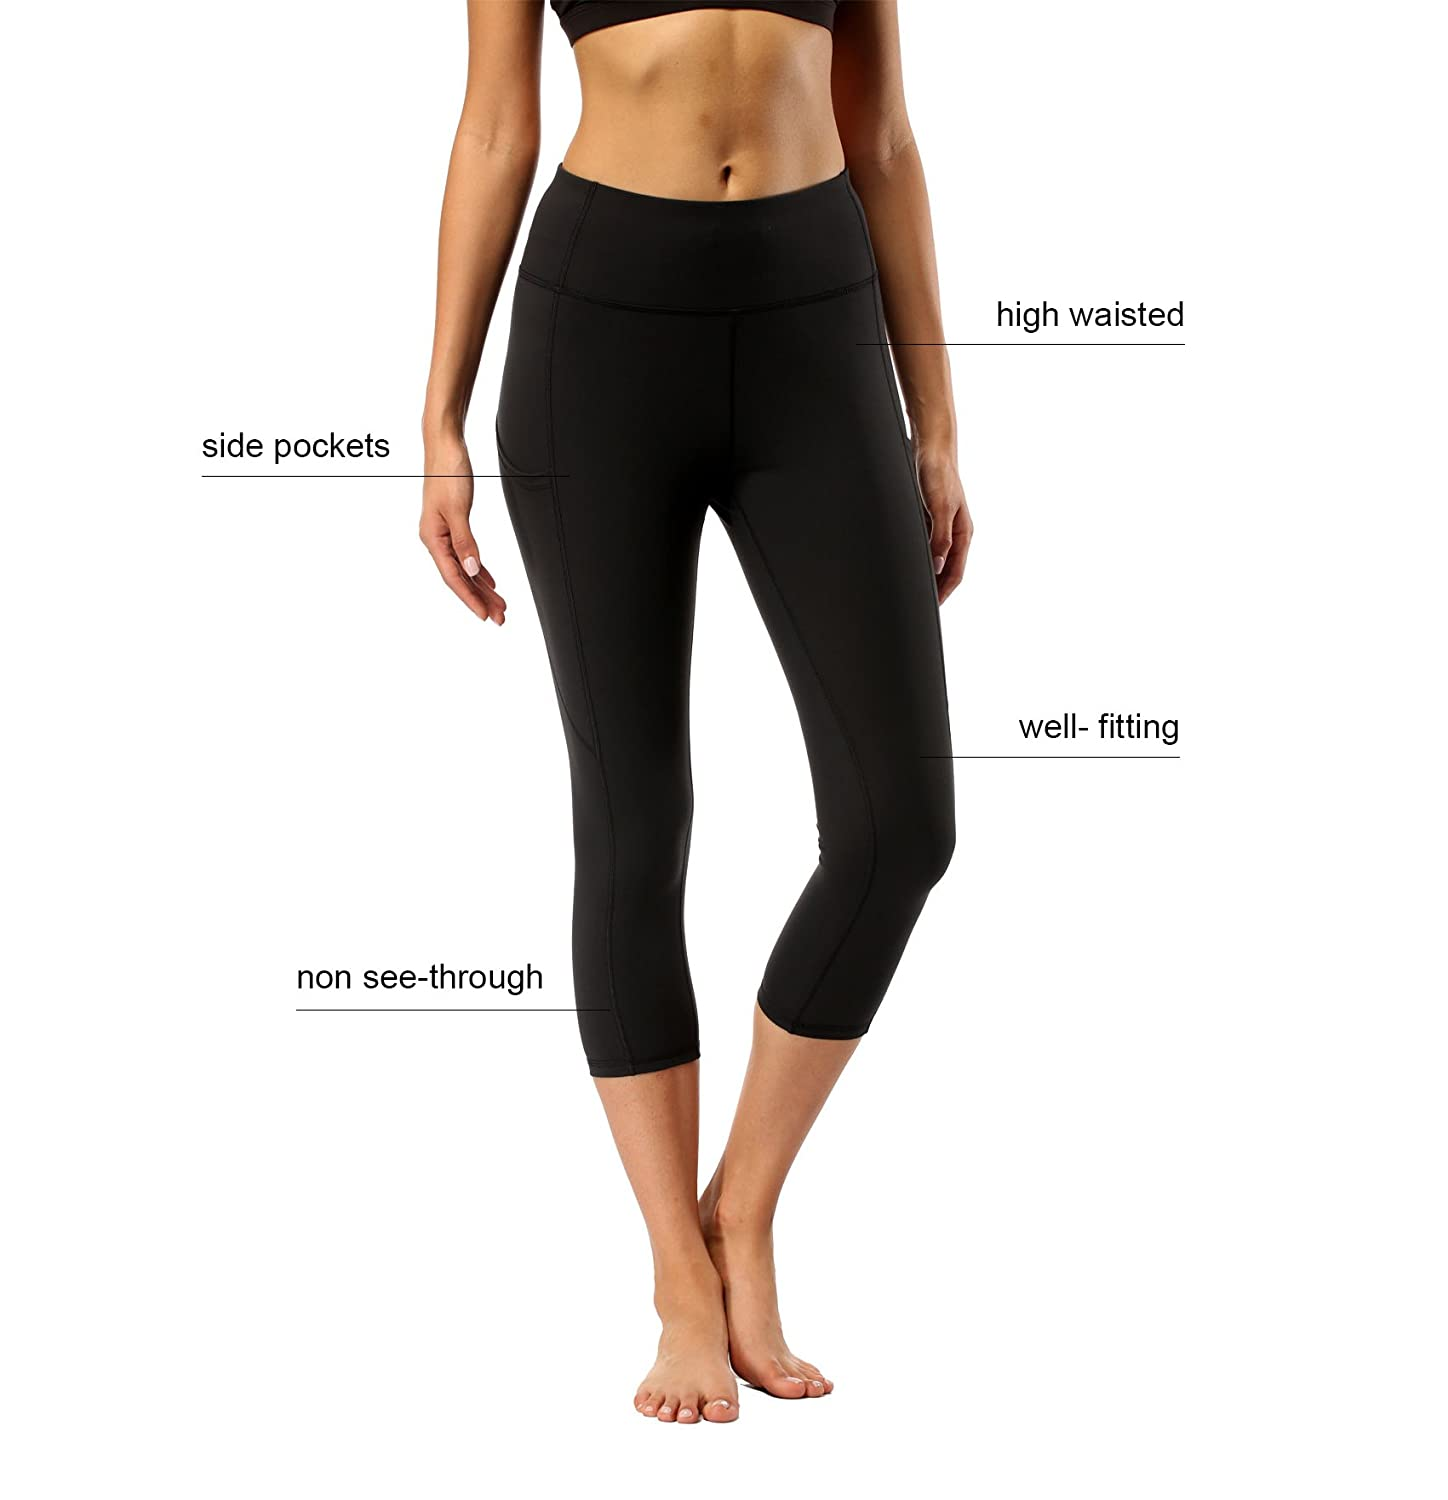 8ac405b345a75 Amazon.com: Womens High Waisted Yoga Pants - Olacia Black Workout Leggings  Athletic Capris 4-Way Stretch Tummy Control Running Pants with Pockets  Small: ...